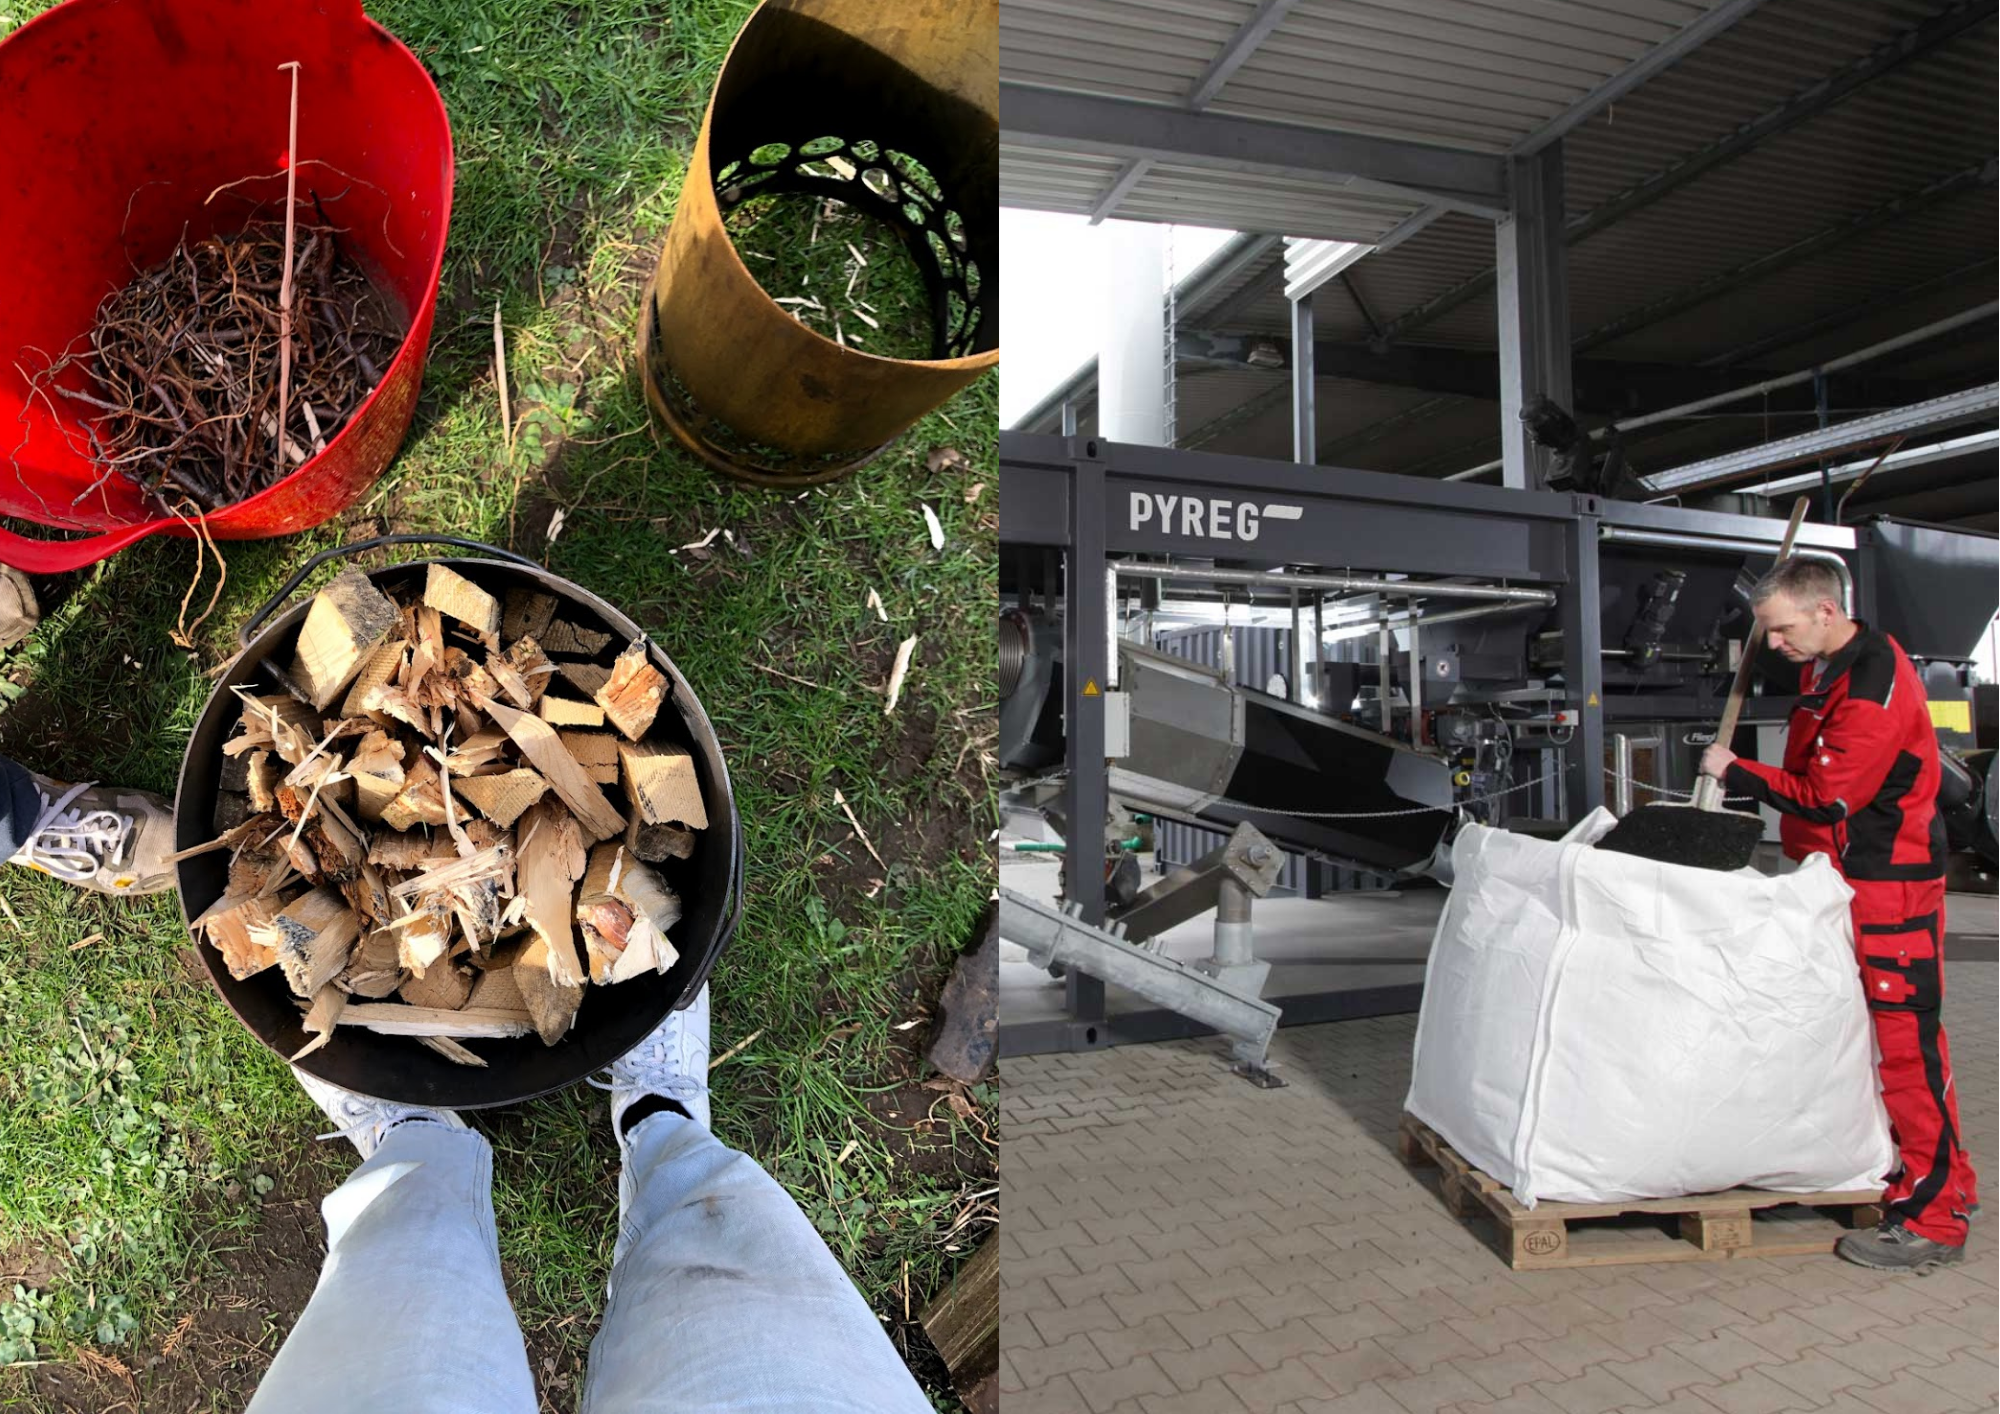 On the left is a small scale biochar kiln Earthly Biochar designed and on the right is a large scale machine by PYREG